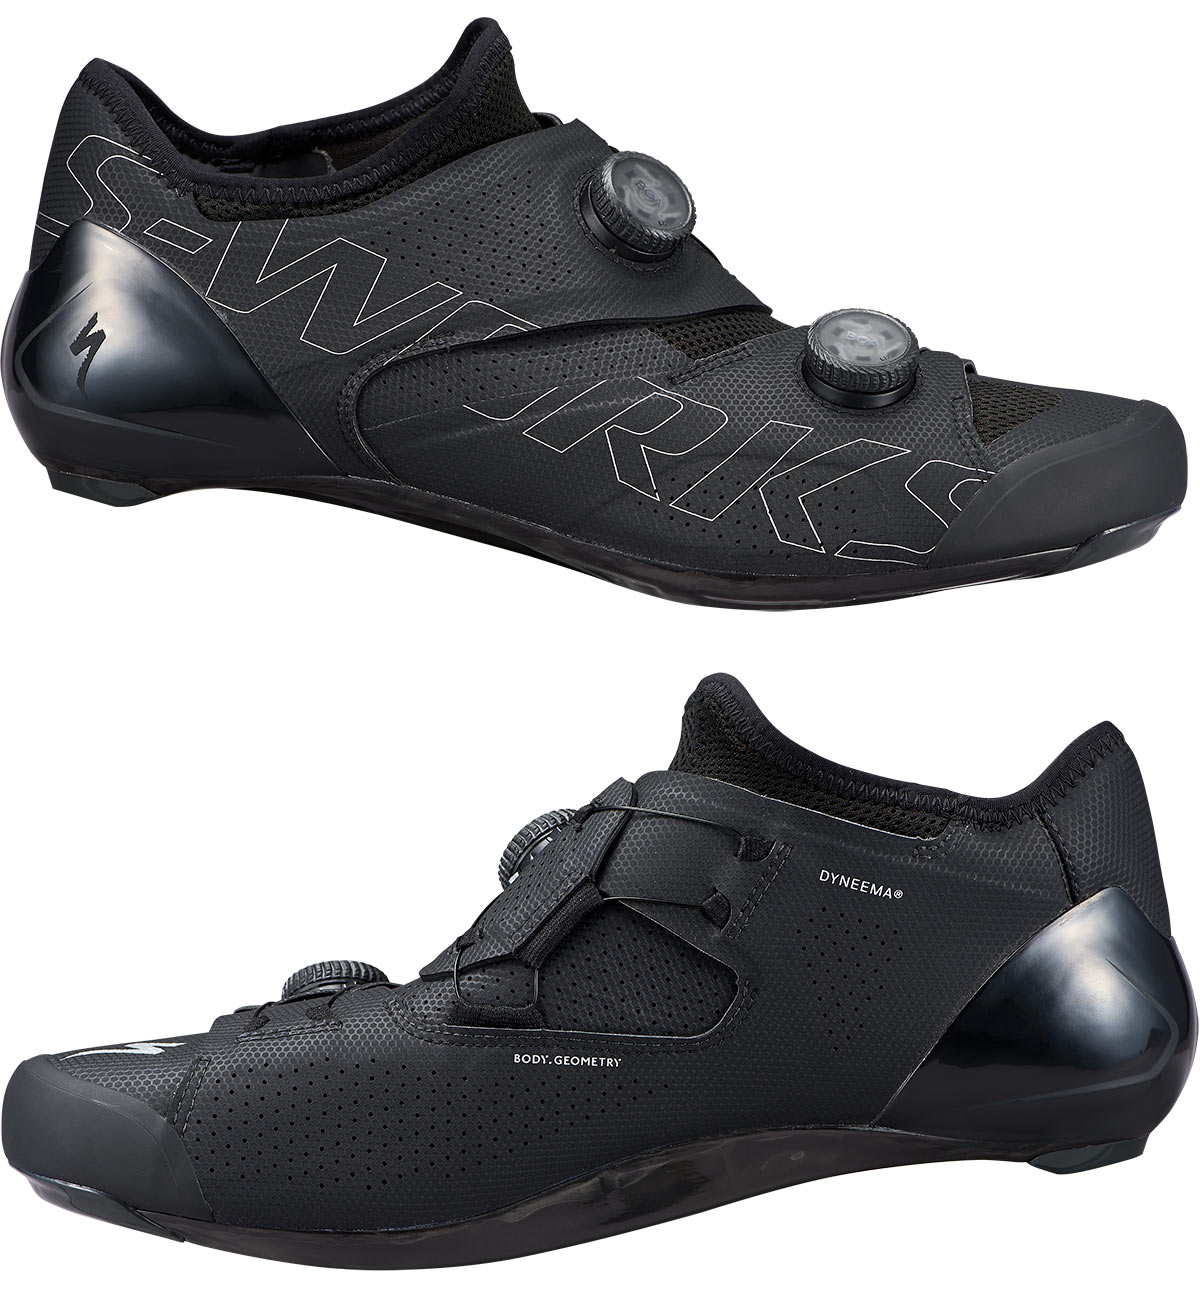 specialized ares s-works road bike shoes side profiles in black colorway